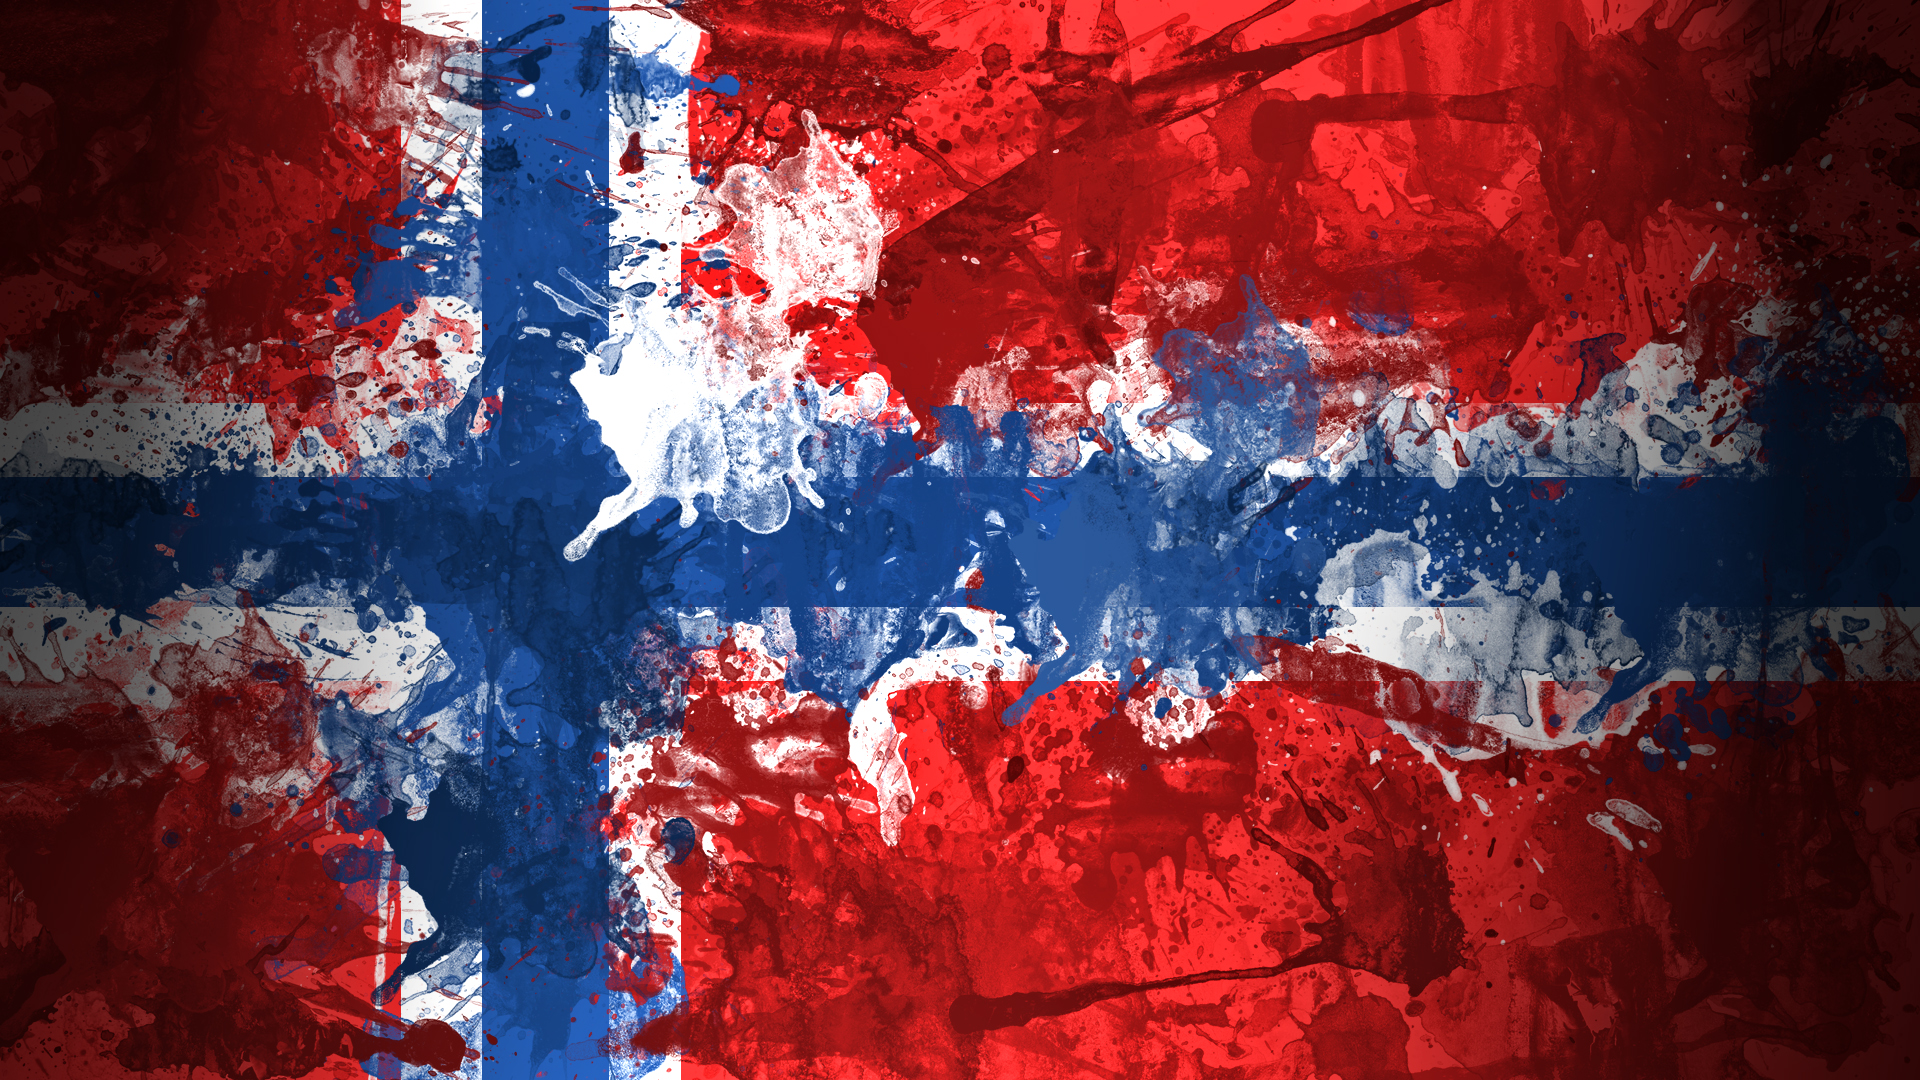 Hd Flag Wallpaper: Norwegian Flag Wallpaper Hd Walldesktophd 1920x1080px